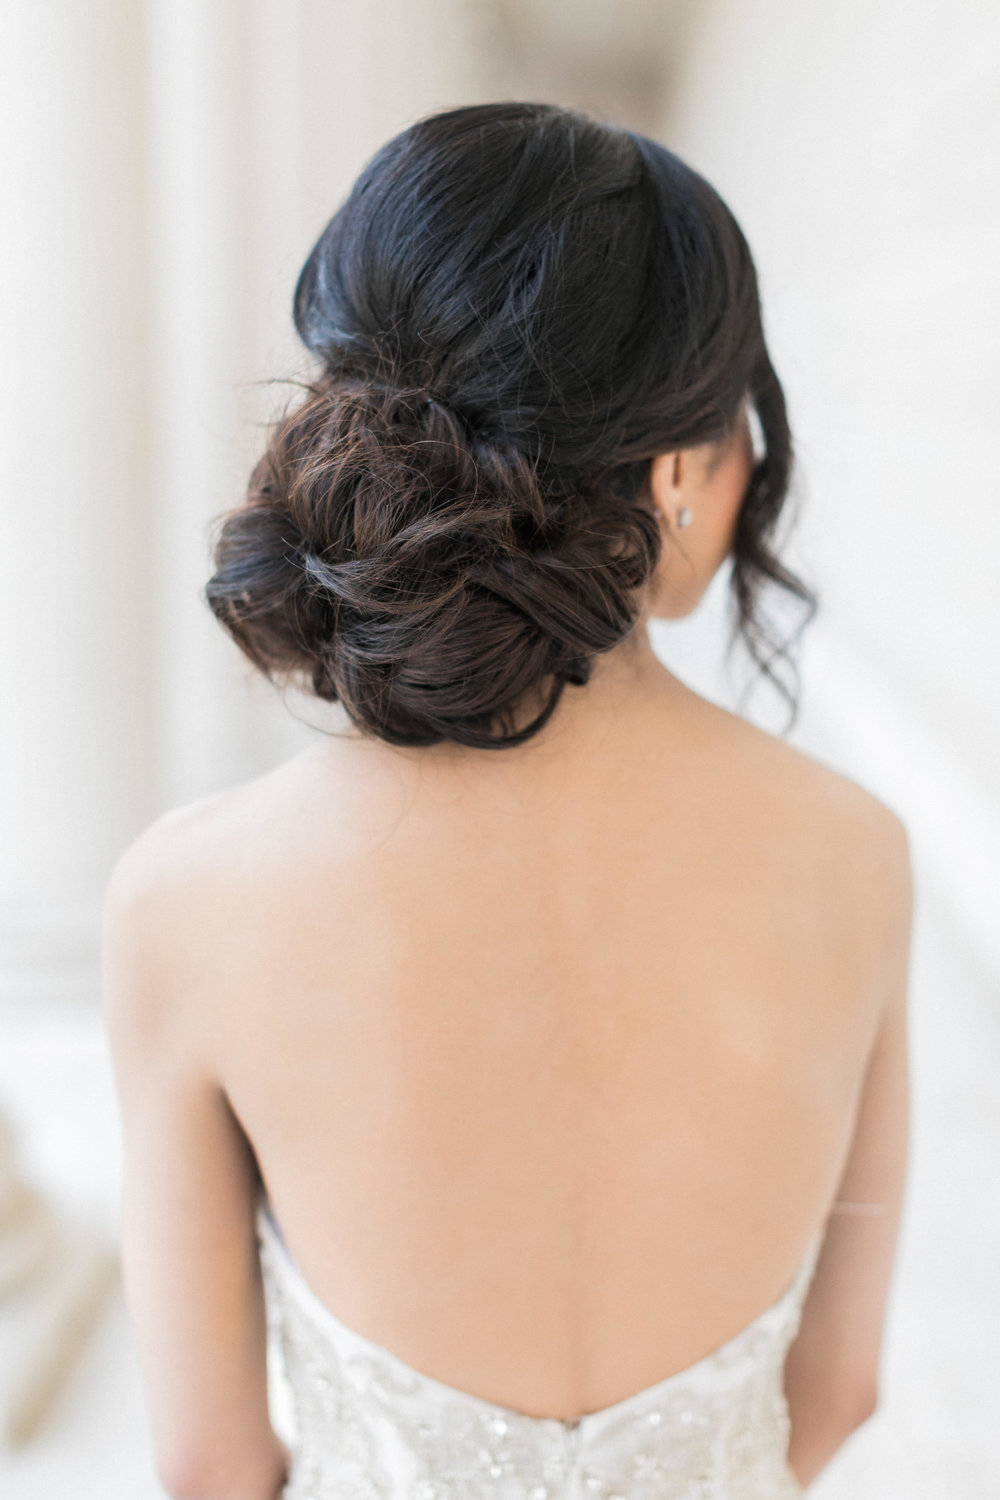 maria-lee-wedding-makeup-hair-sf-scar-cover_karen.jpg